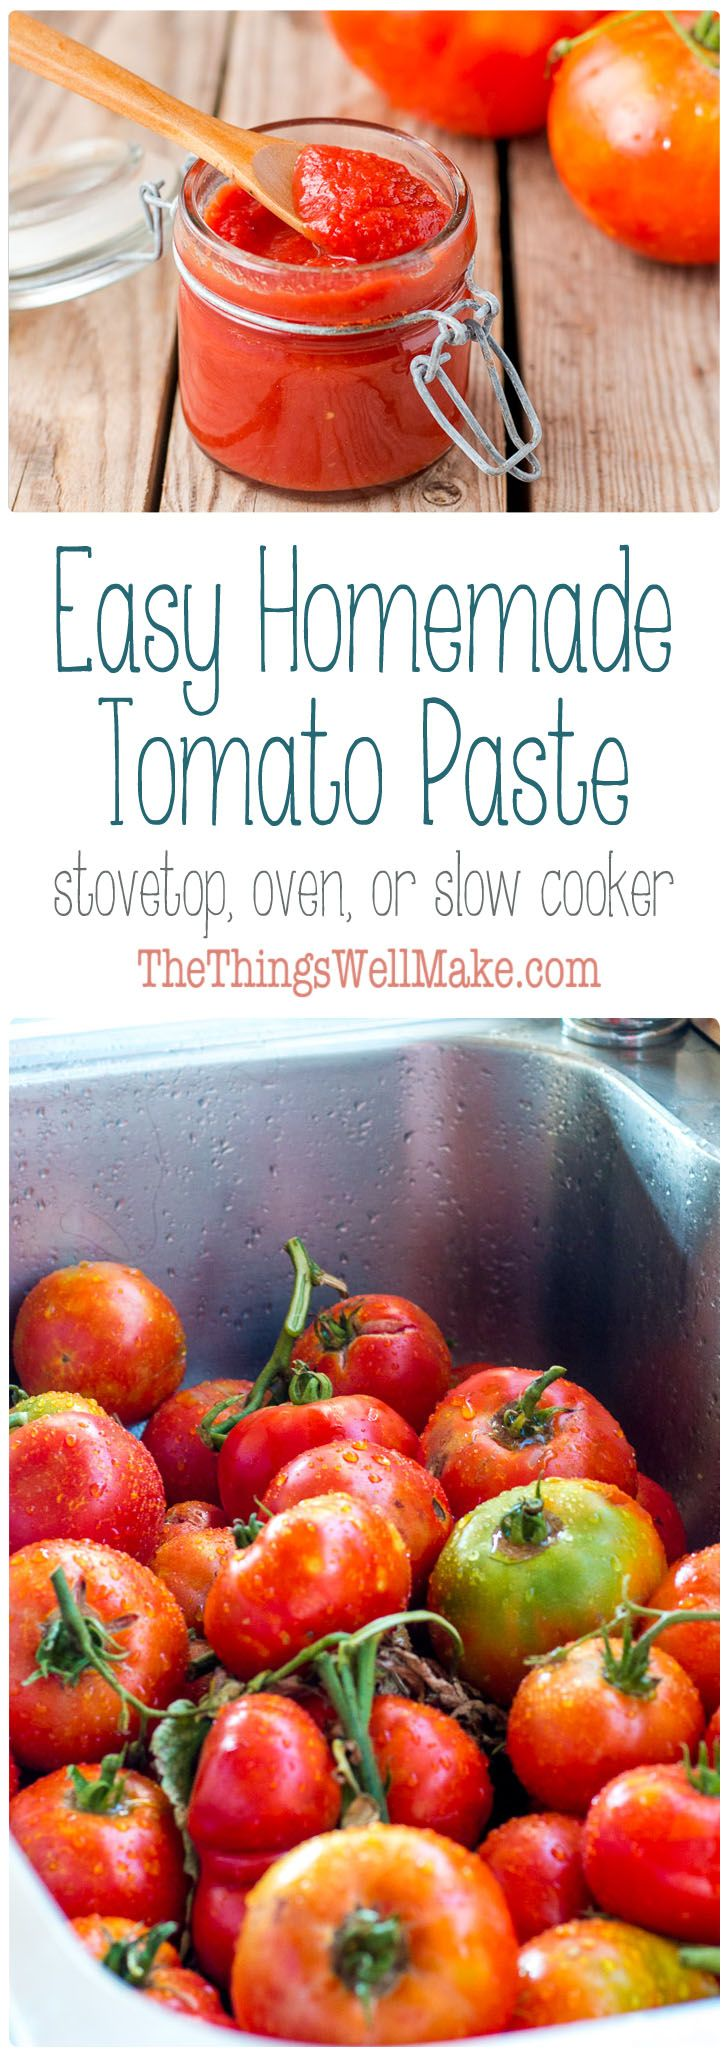 Conserve excess tomatoes with an easy, homemade tomato paste that can be made on the stove top, in your oven, or in a slow cooker. Click to see how I store mine.